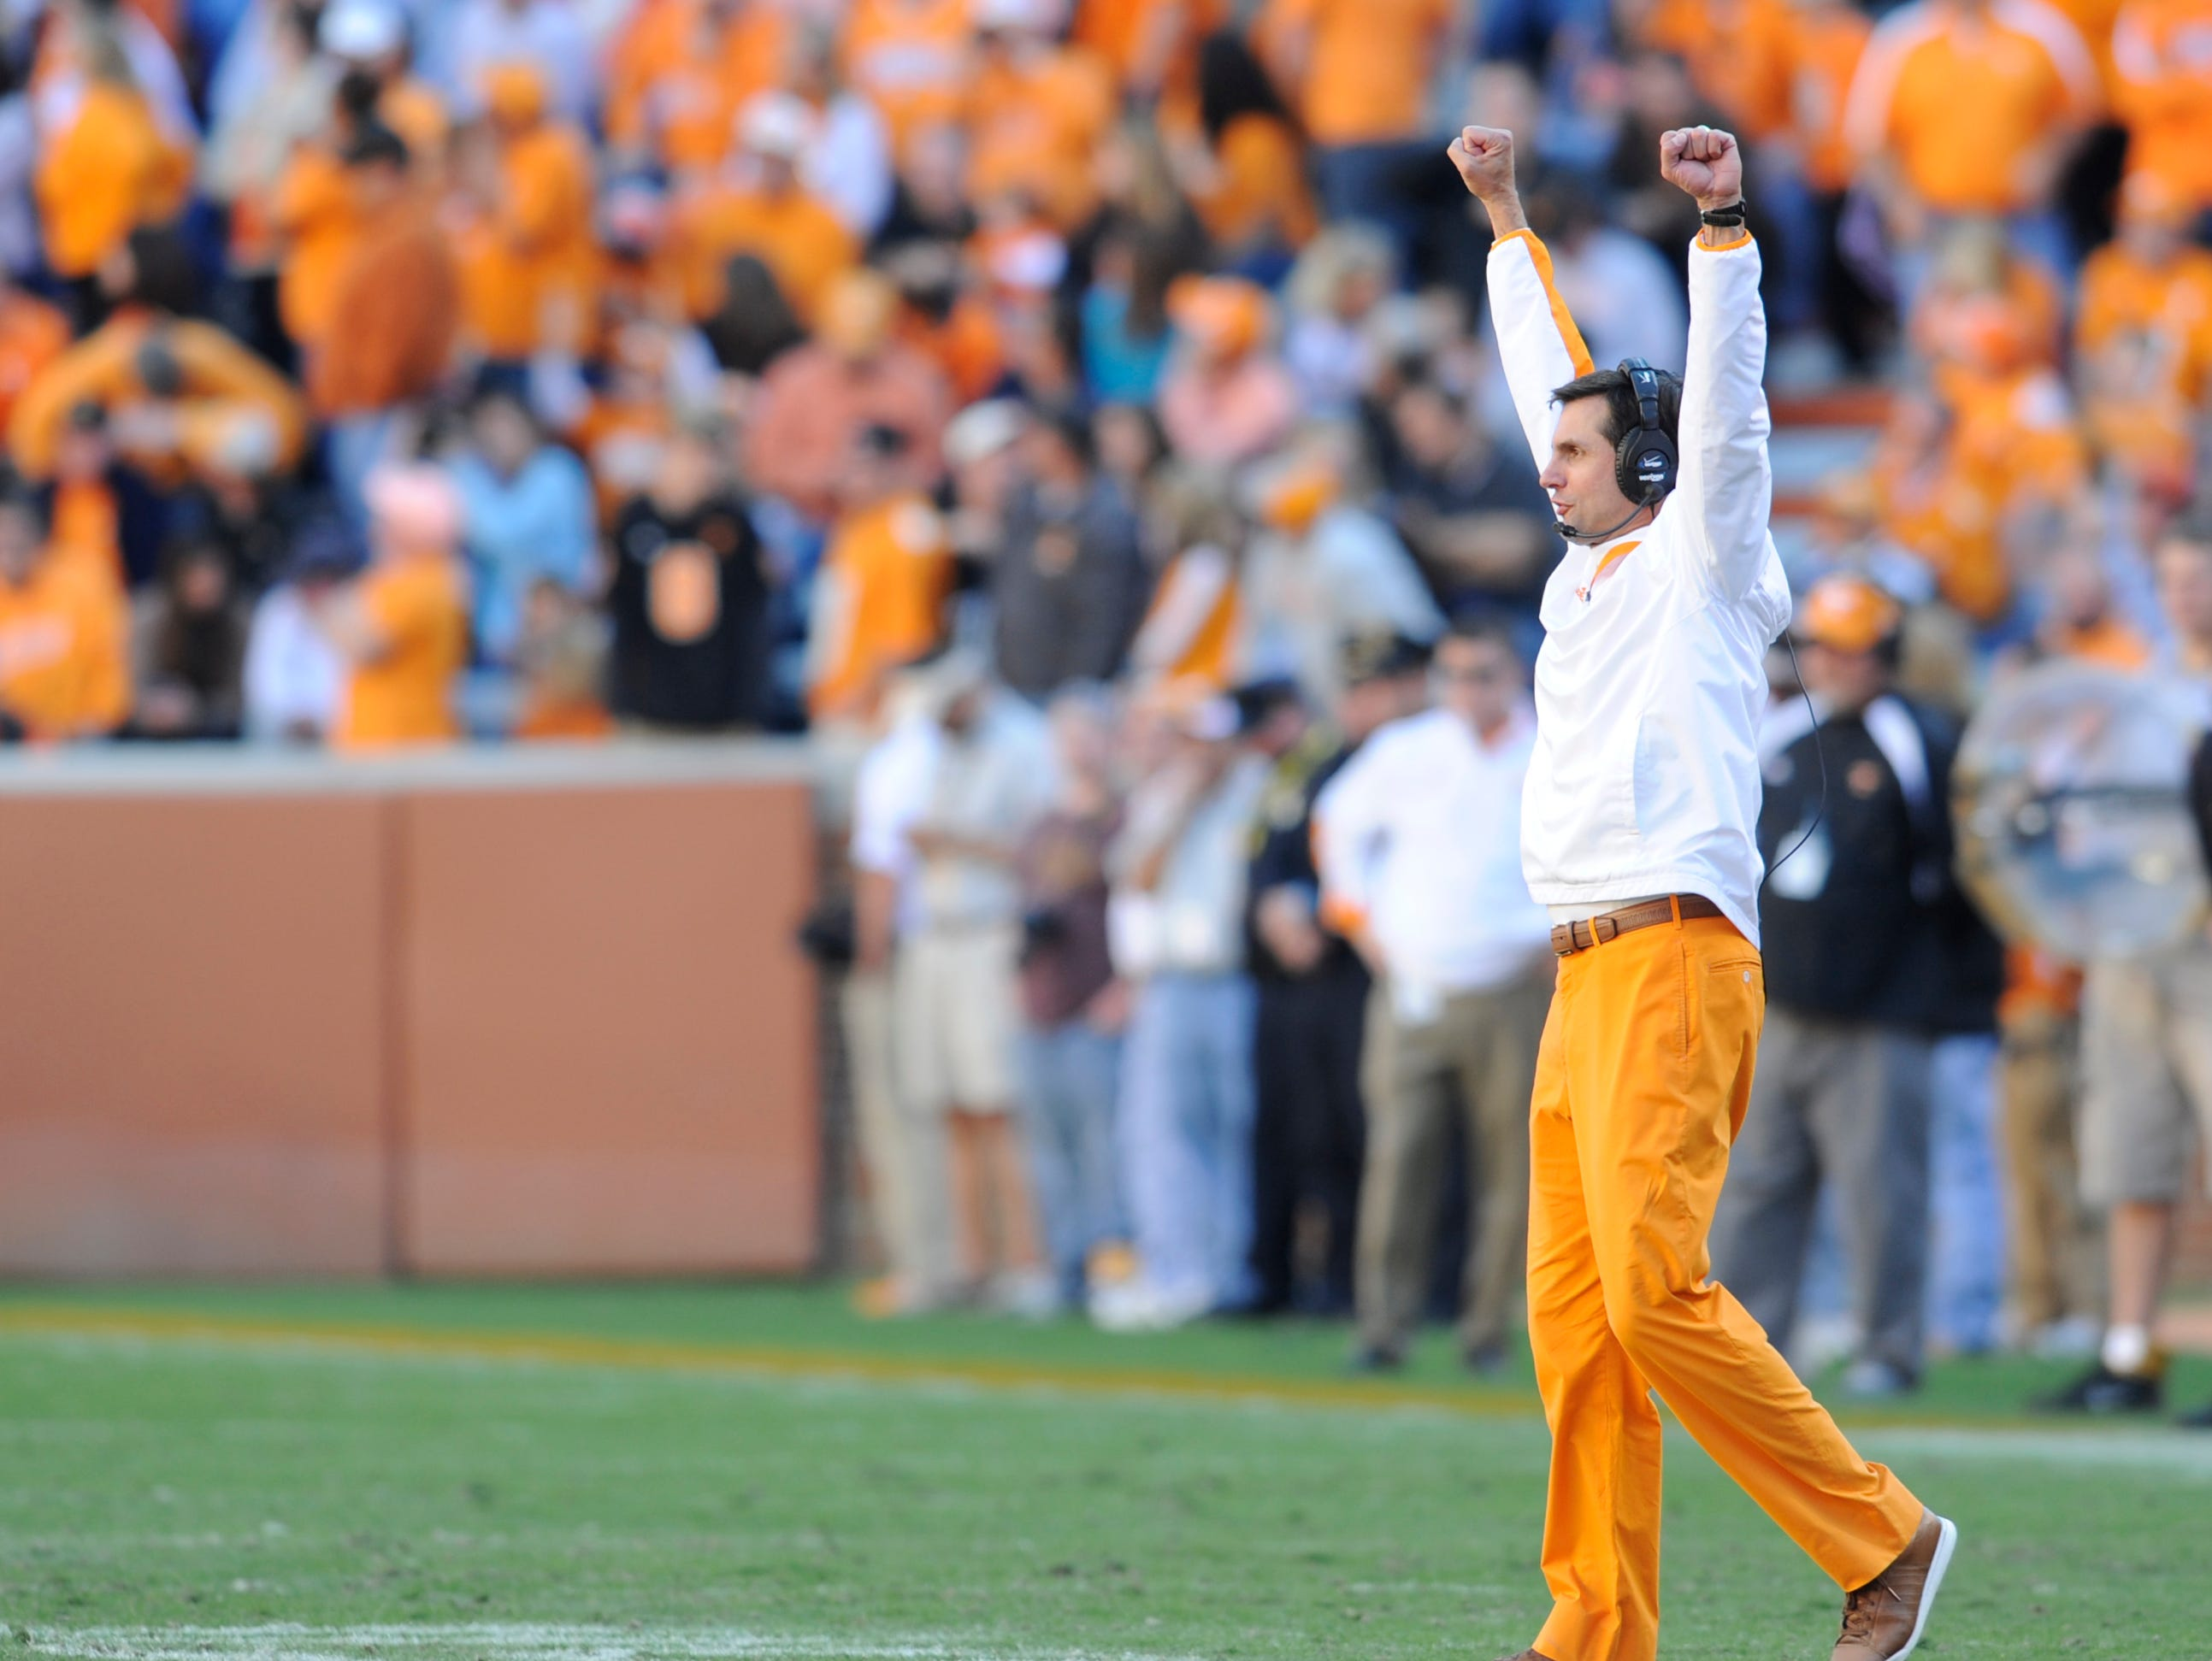 Tennessee head coach Derek Dooley celebrates a defensive stop during the second half against Missouri at Neyland Stadium Saturday, Nov. 10, 2012. UT lost in four overtimes 51-48.